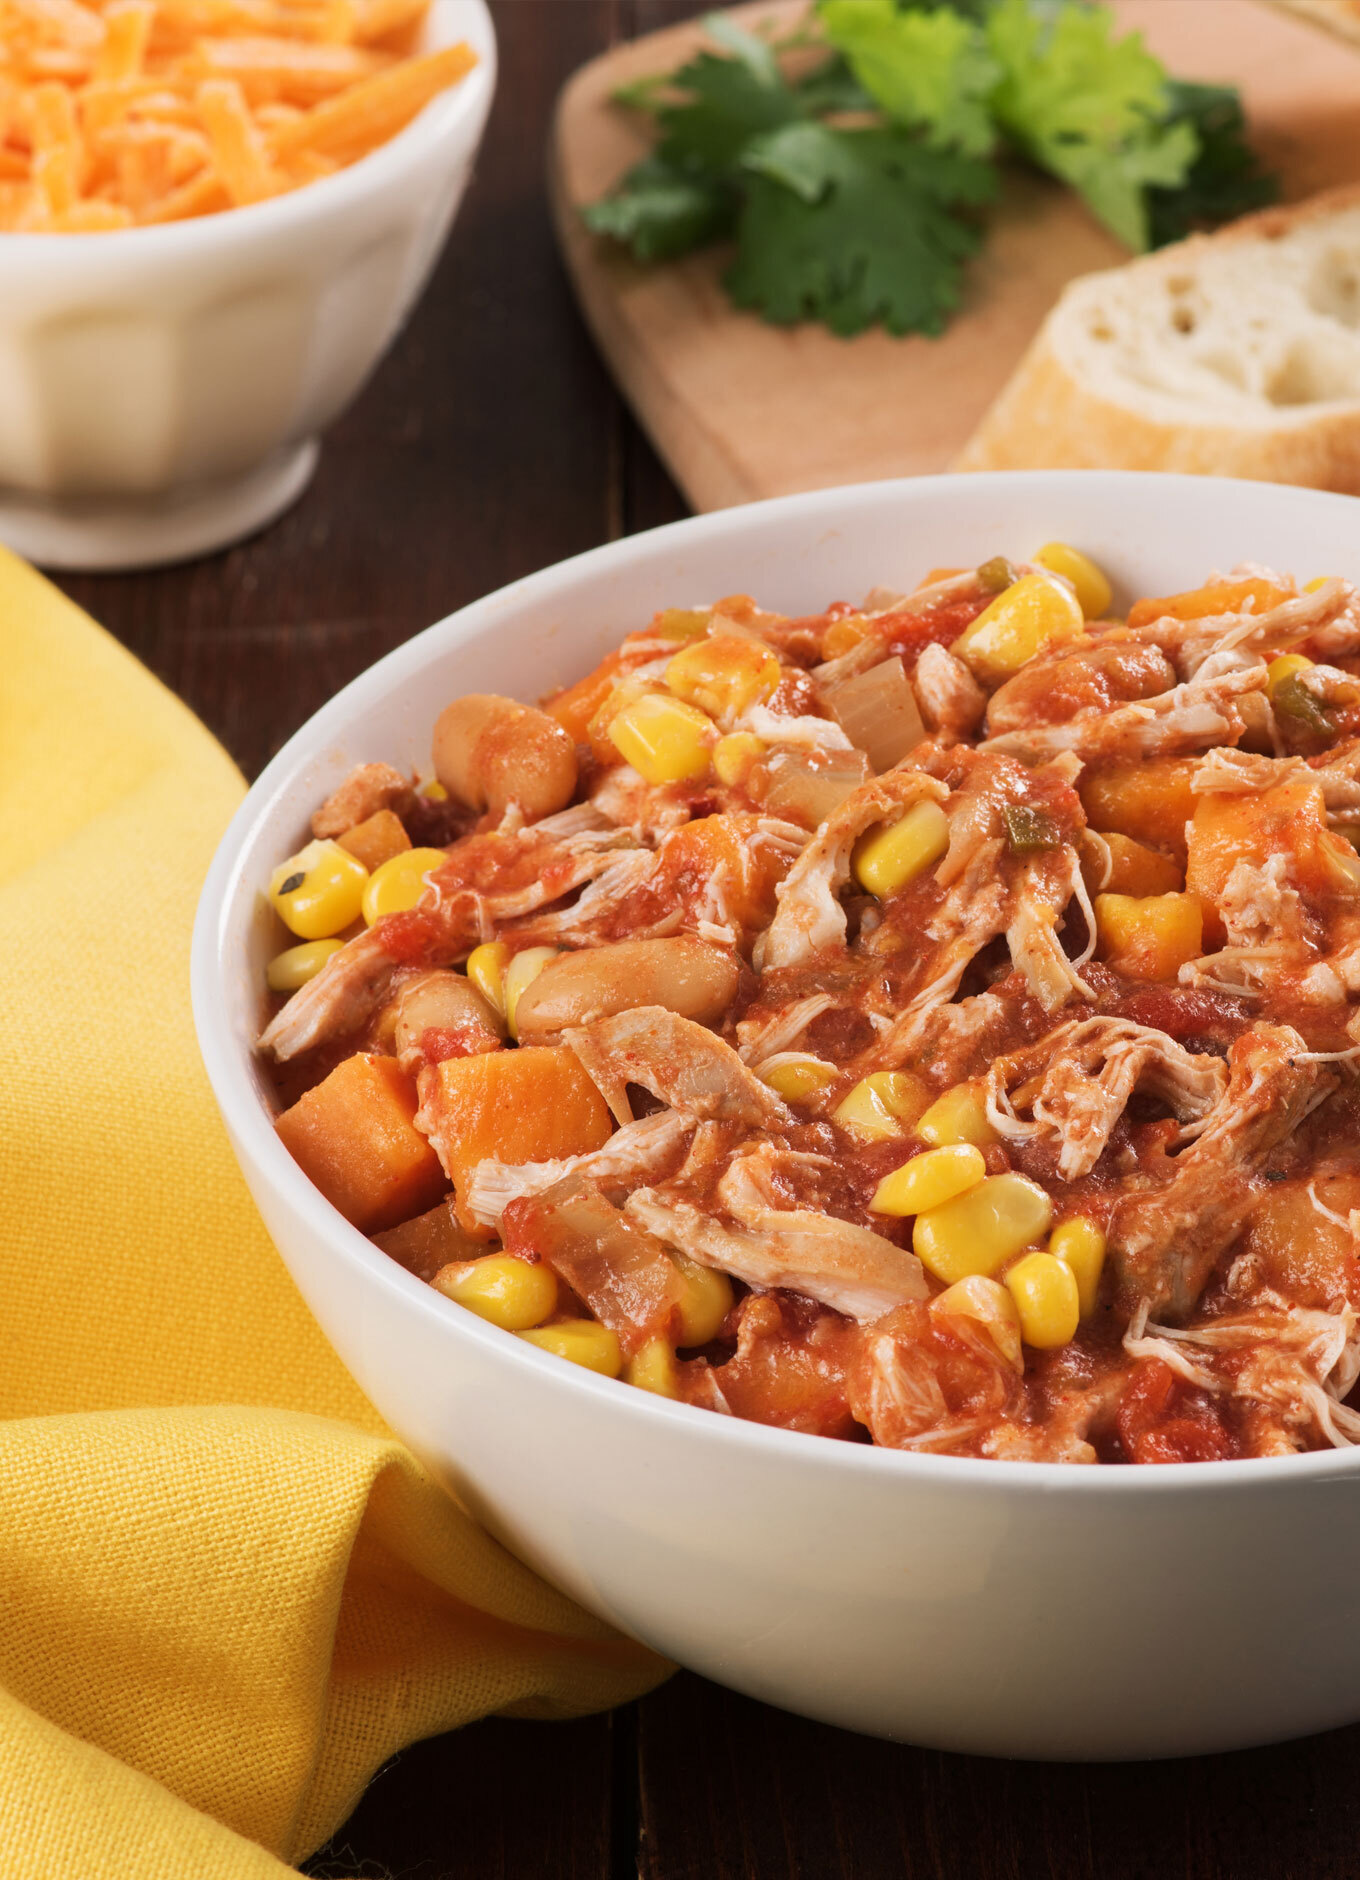 A steaming bowl of Slow Cooker Chicken & White Bean Chili with pulled chicken, corn, and white beans.